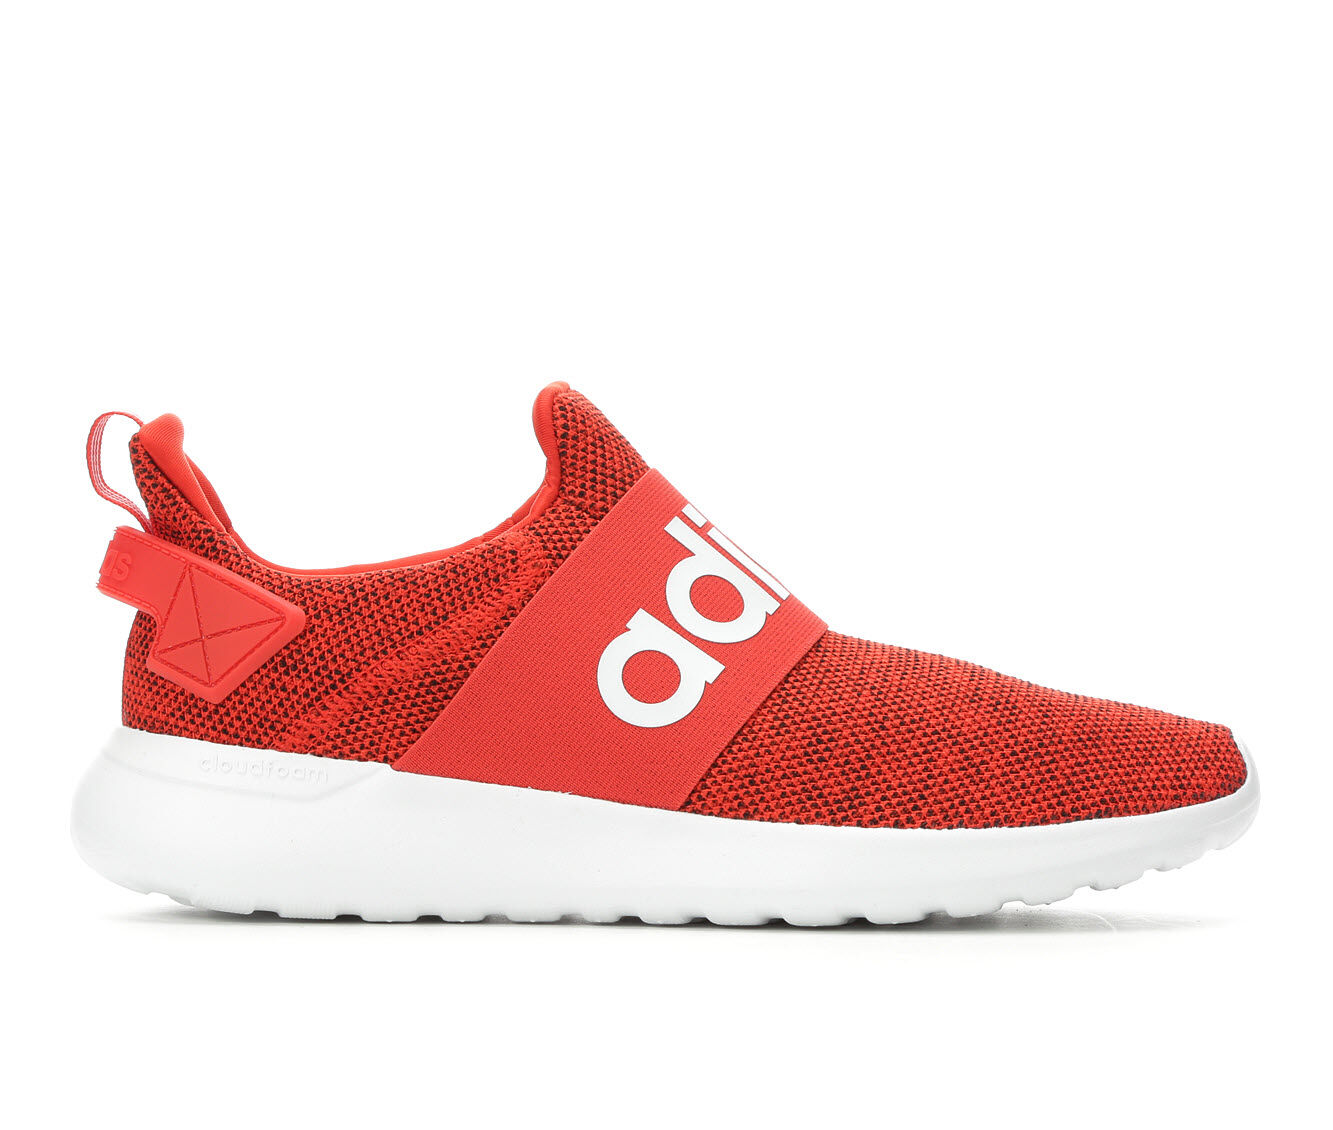 Men's Adidas Cloudfoam Lite Racer Adapt Sneakers Red/White